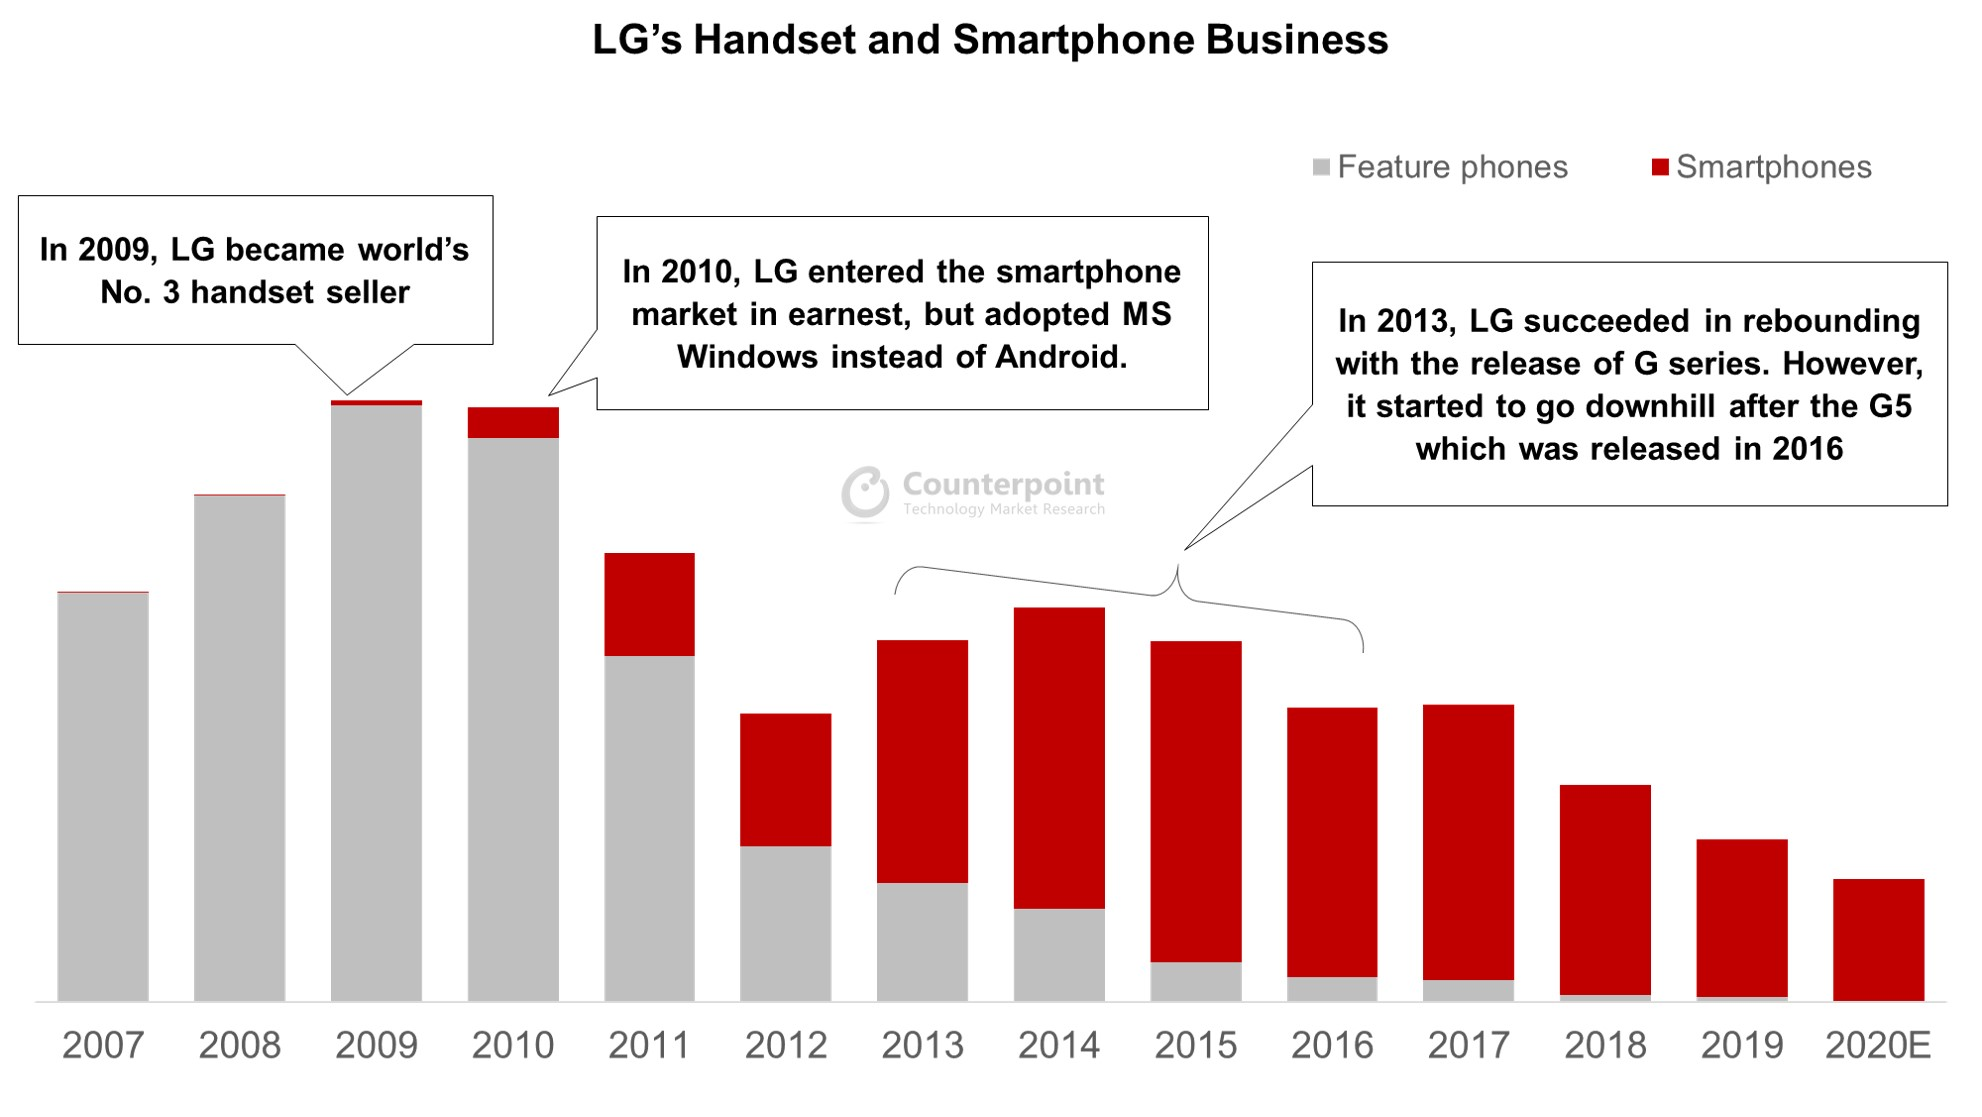 Counterpoint Research LG Handset and Smartphone Business